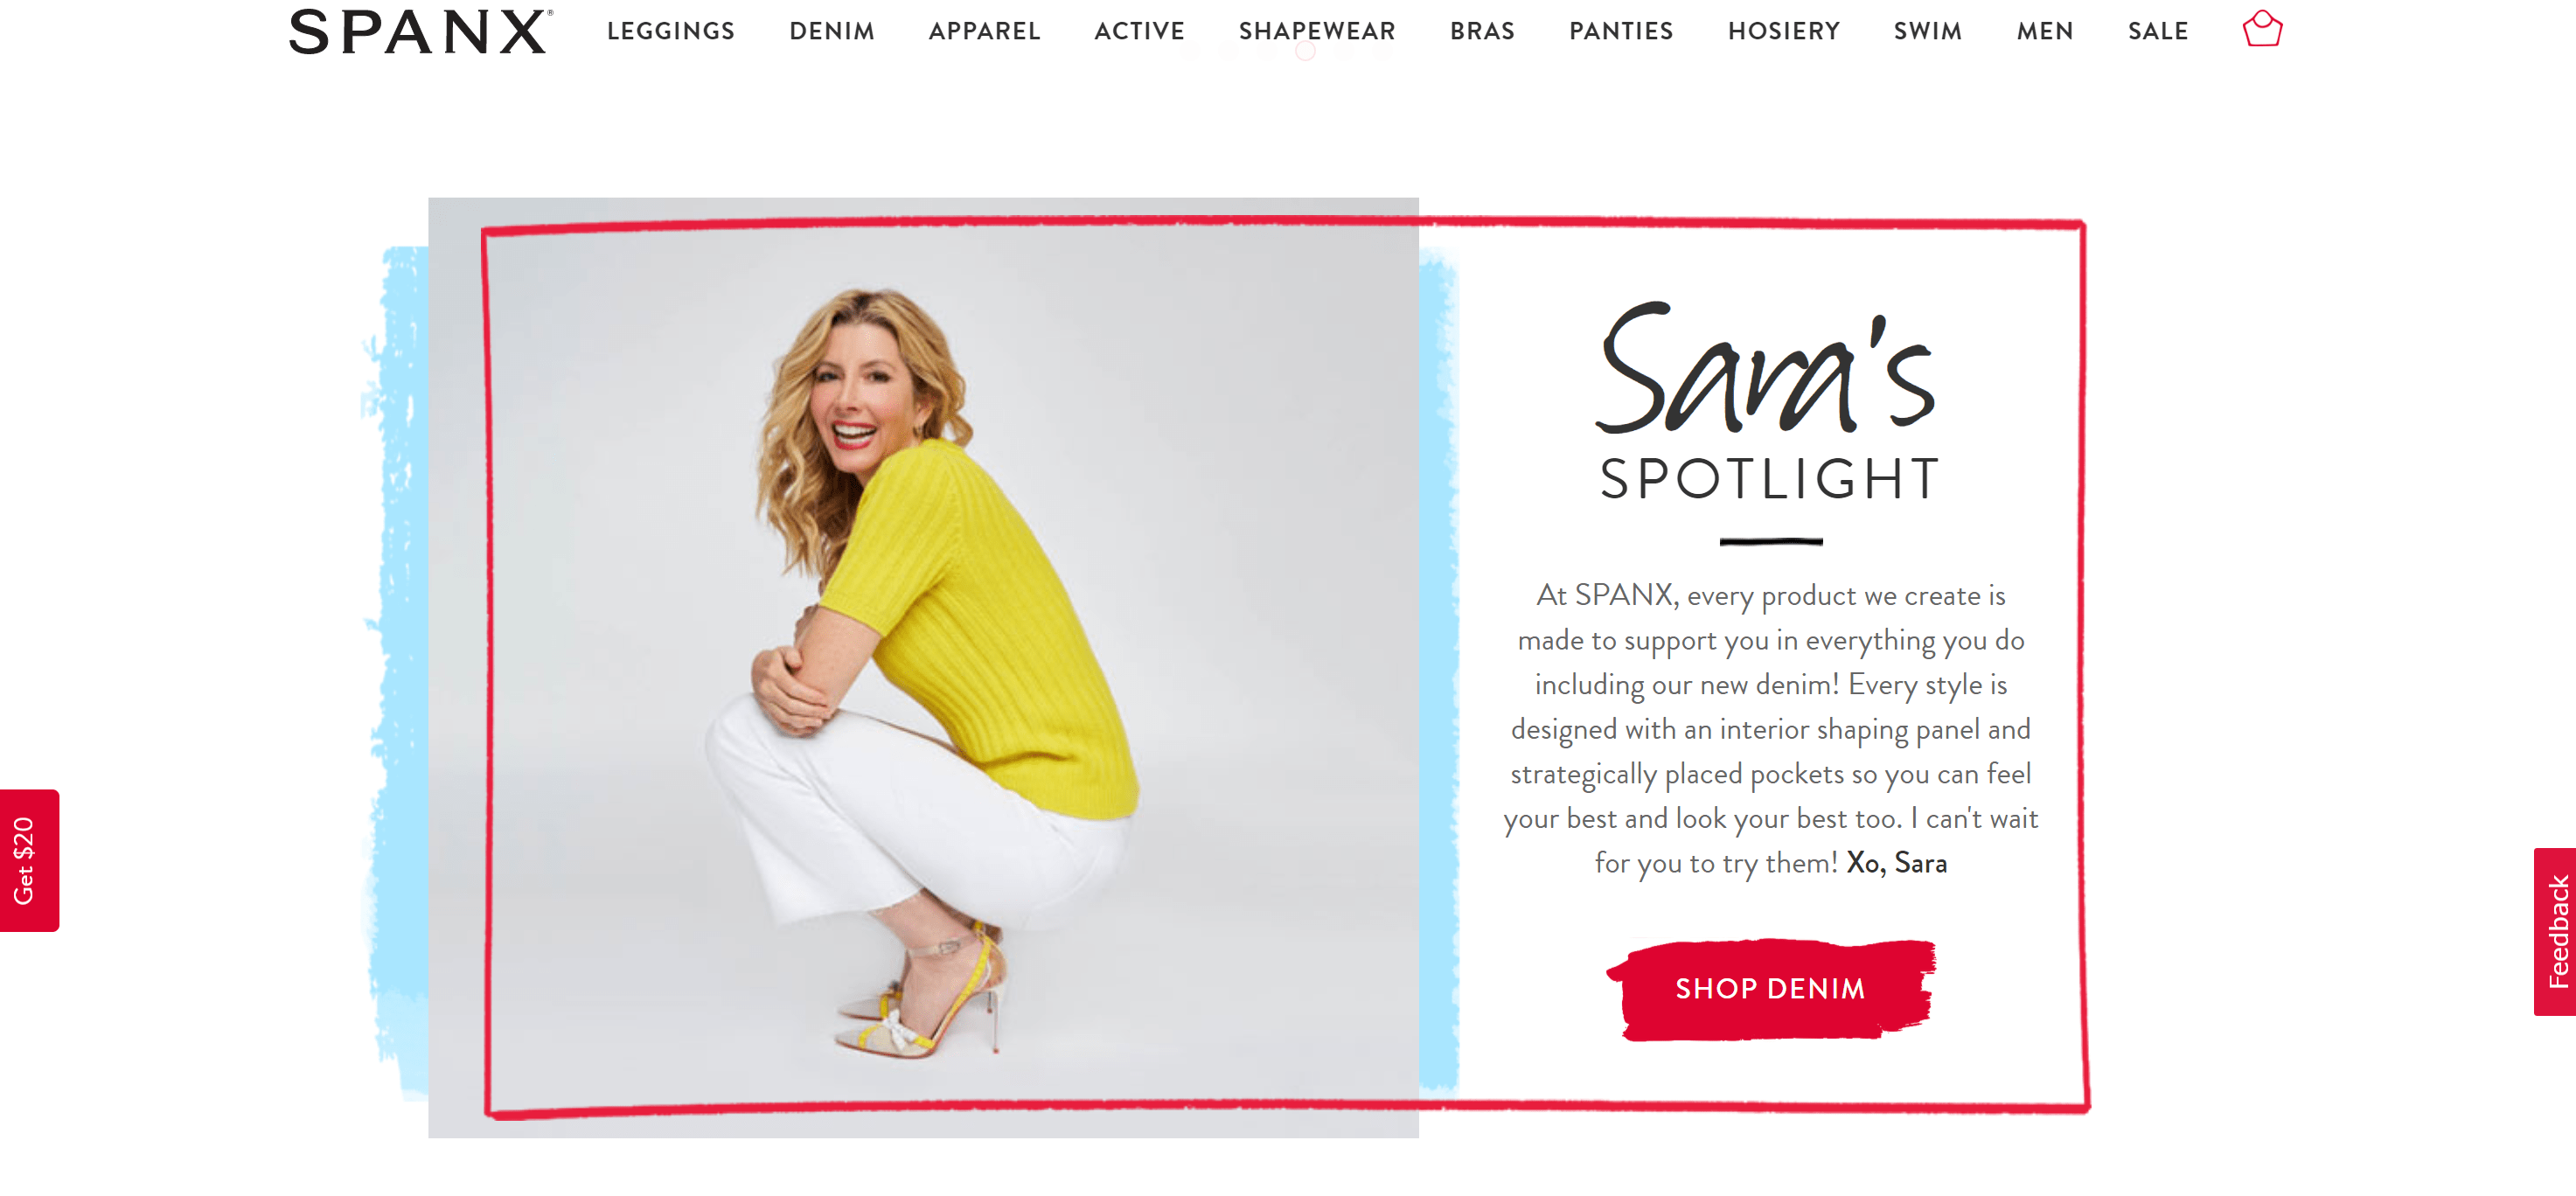 Spanx leggings coupons